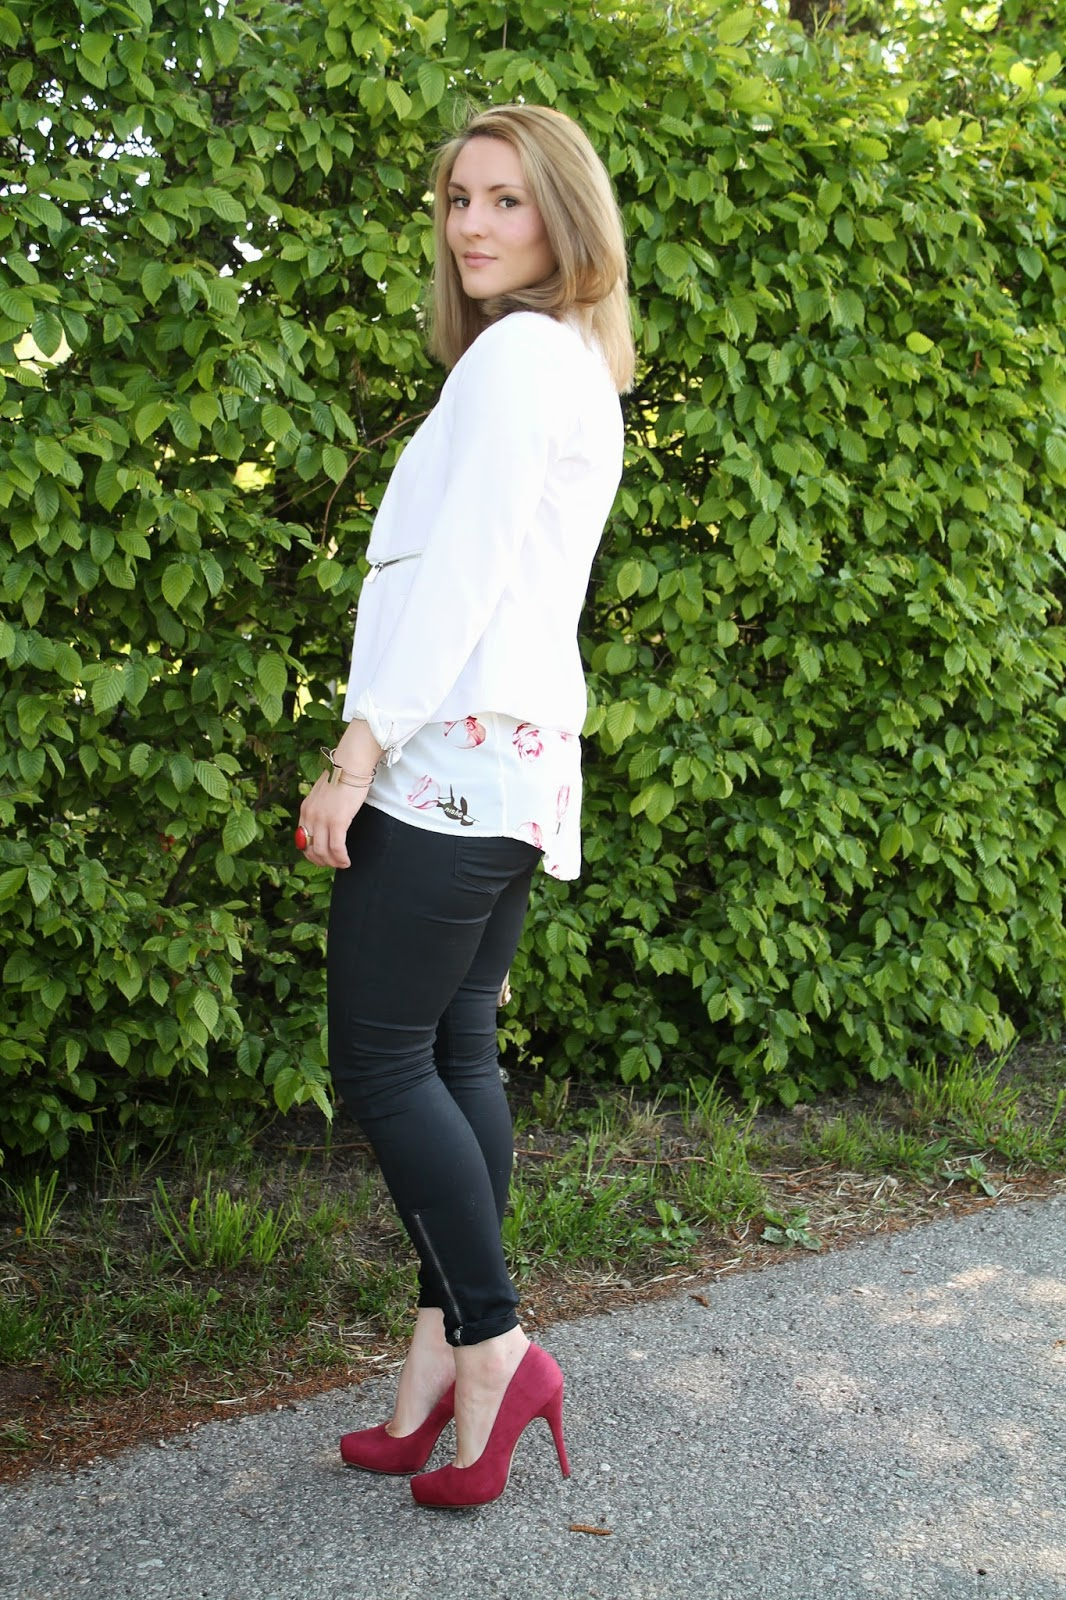 Fashionblogger Austria / Österreich / Deutsch / German / Kärnten / Carinthia / Klagenfurt / Köttmannsdorf / Spring Look / Classy / Edgy / Flower/ Blouse / Blazer / White / Streetstyle / Fashion / Looks / Outfit / Deichmann / Oasap / Marc by Marc Jacobs / H&M / Ann Christine / Waxed Jeans /